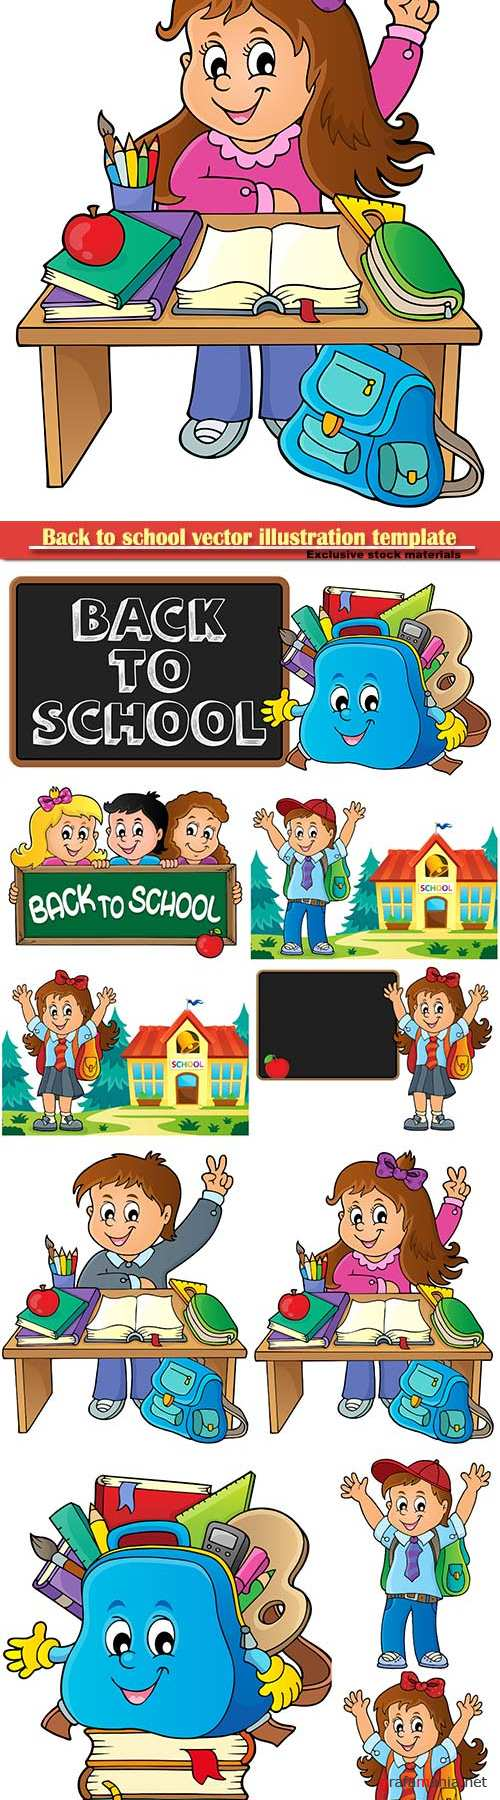 Back to school vector illustration template # 2